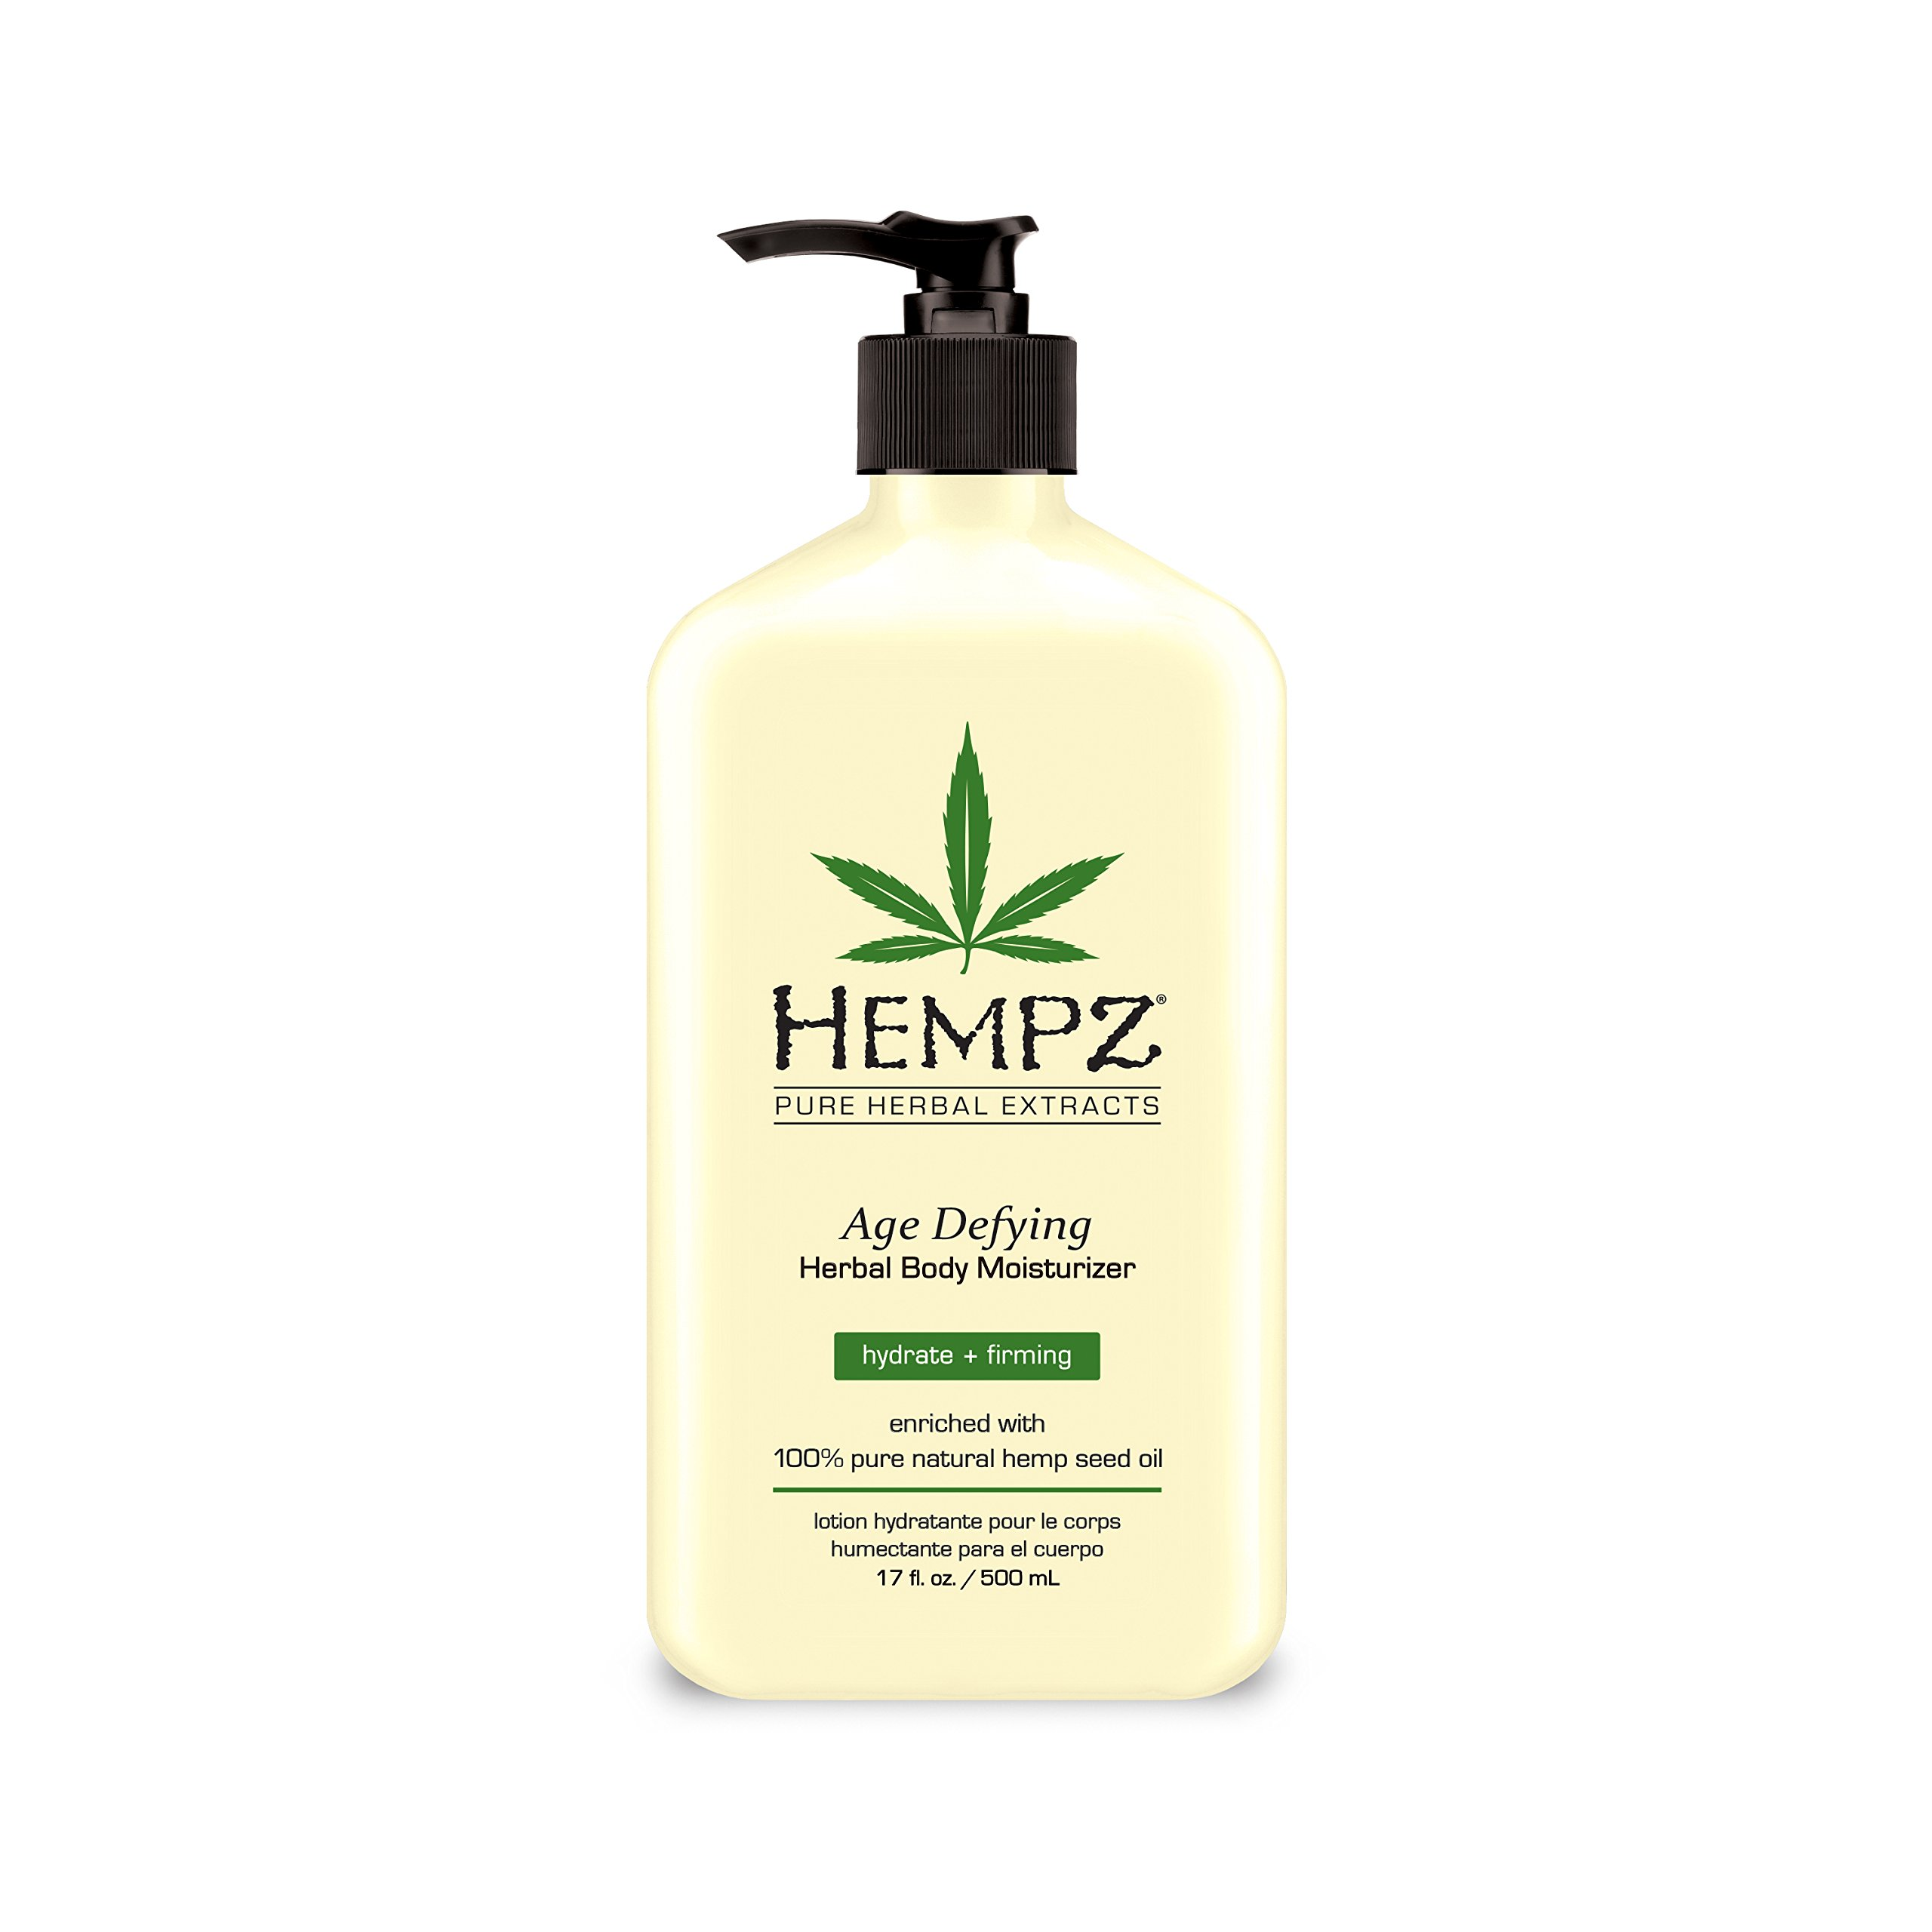 Hempz Body Moisturizer - Daily Herbal Moisturizer, Shea Butter Anti-Aging Body Moisturizer - Body Lotion, Hemp Extract Lotion - Skin Care Products, 100% Pure Organic Hemp Seed Oil by Hempz